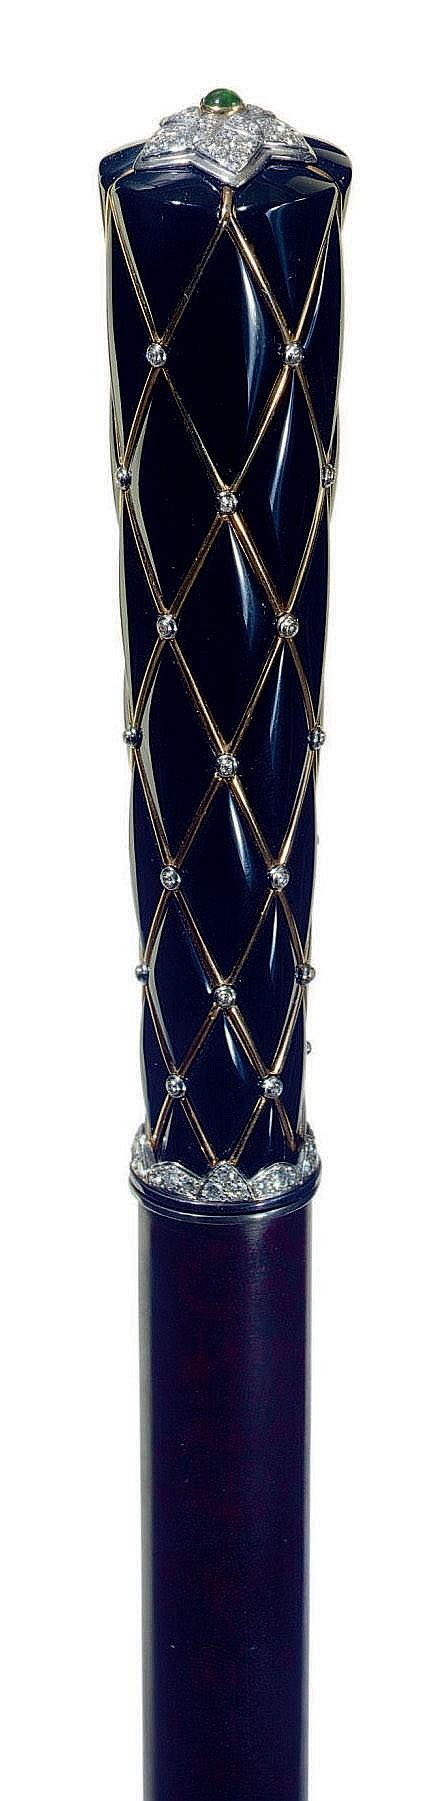 A FRENCH DIAMOND-MOUNTED BLACK ENAMEL METAMORPHIC CANE <br />POSSIBLY BY CARTIER, CIRCA 1920 <br />The quilted enameled handle inset with yellow gold stringing punctuated with diamonds below a green stone and pavé diamond rosette rising to reveal a miniature clock with later quartz movement, mahogany shaft<br />36½ in. (93 cm.) high <br />